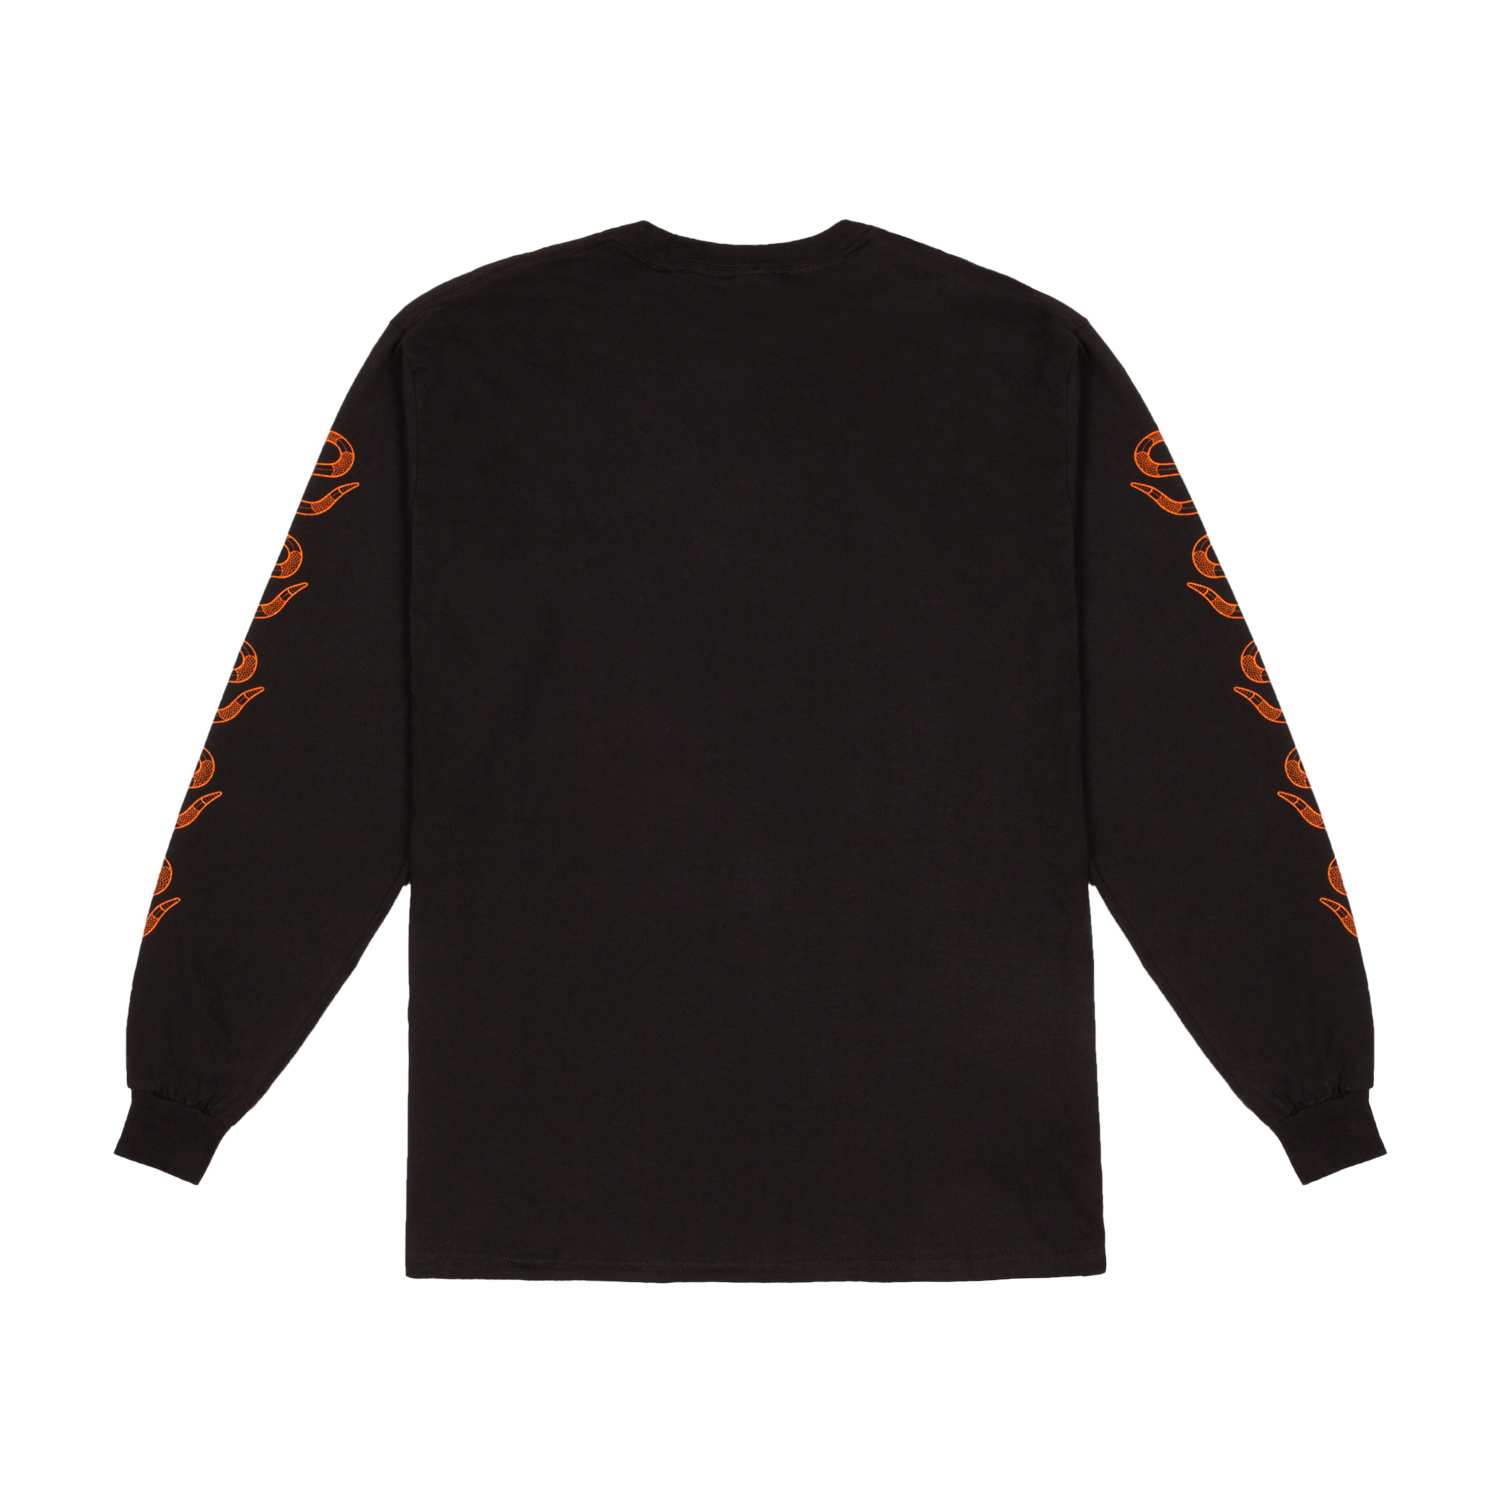 Black t shirt photo - Long Sleeved Black T Shirt Black Orange Printed